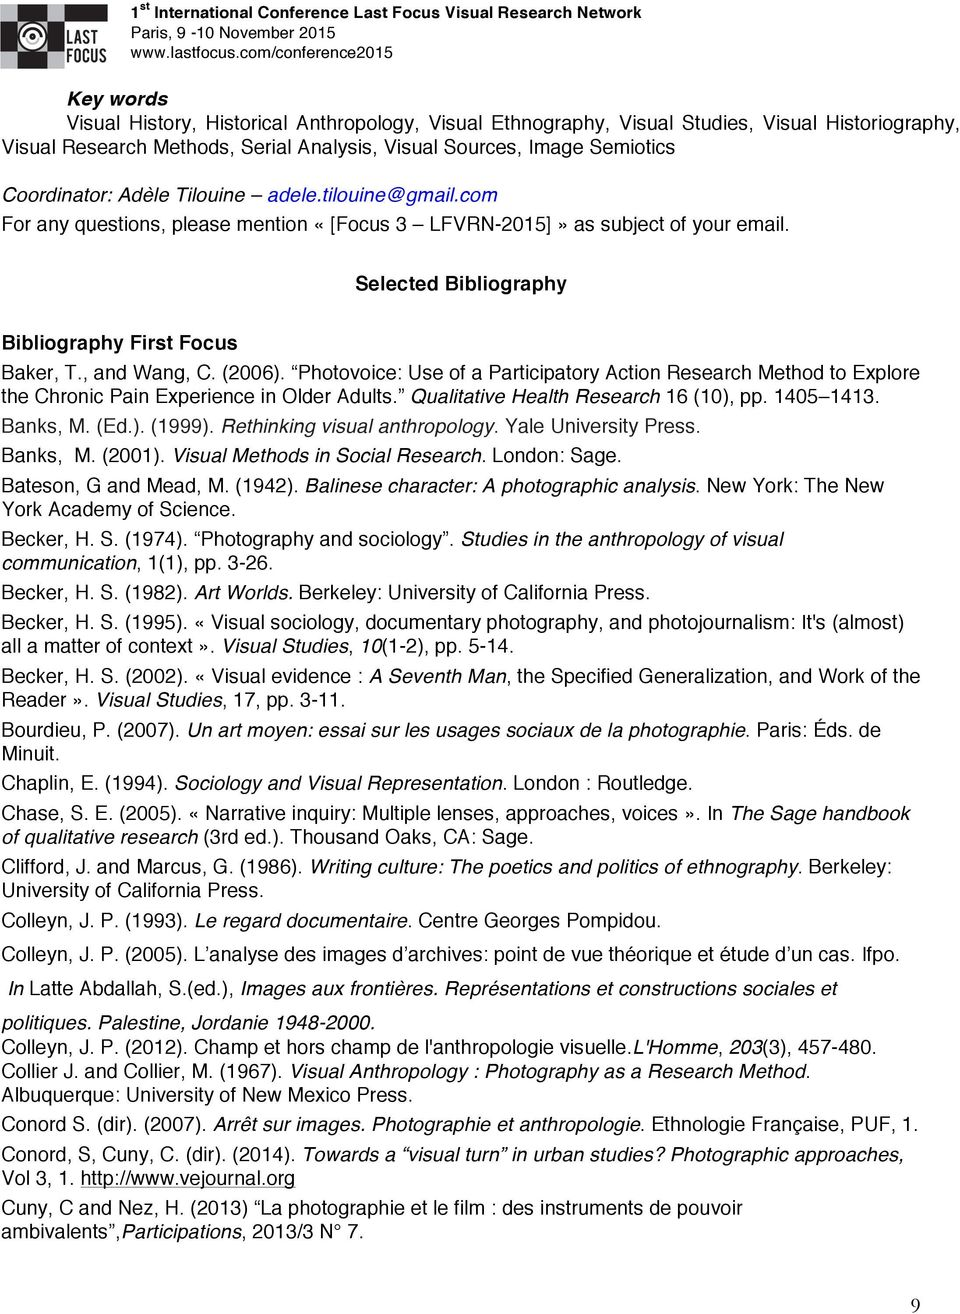 Selected Bibliography Bibliography Fir Focus Baker, T., and Wang, C. (2006). Photovoice: Use of a Participatory Action Research Method to Explore the Chronic Pain Experience in Older Adults.